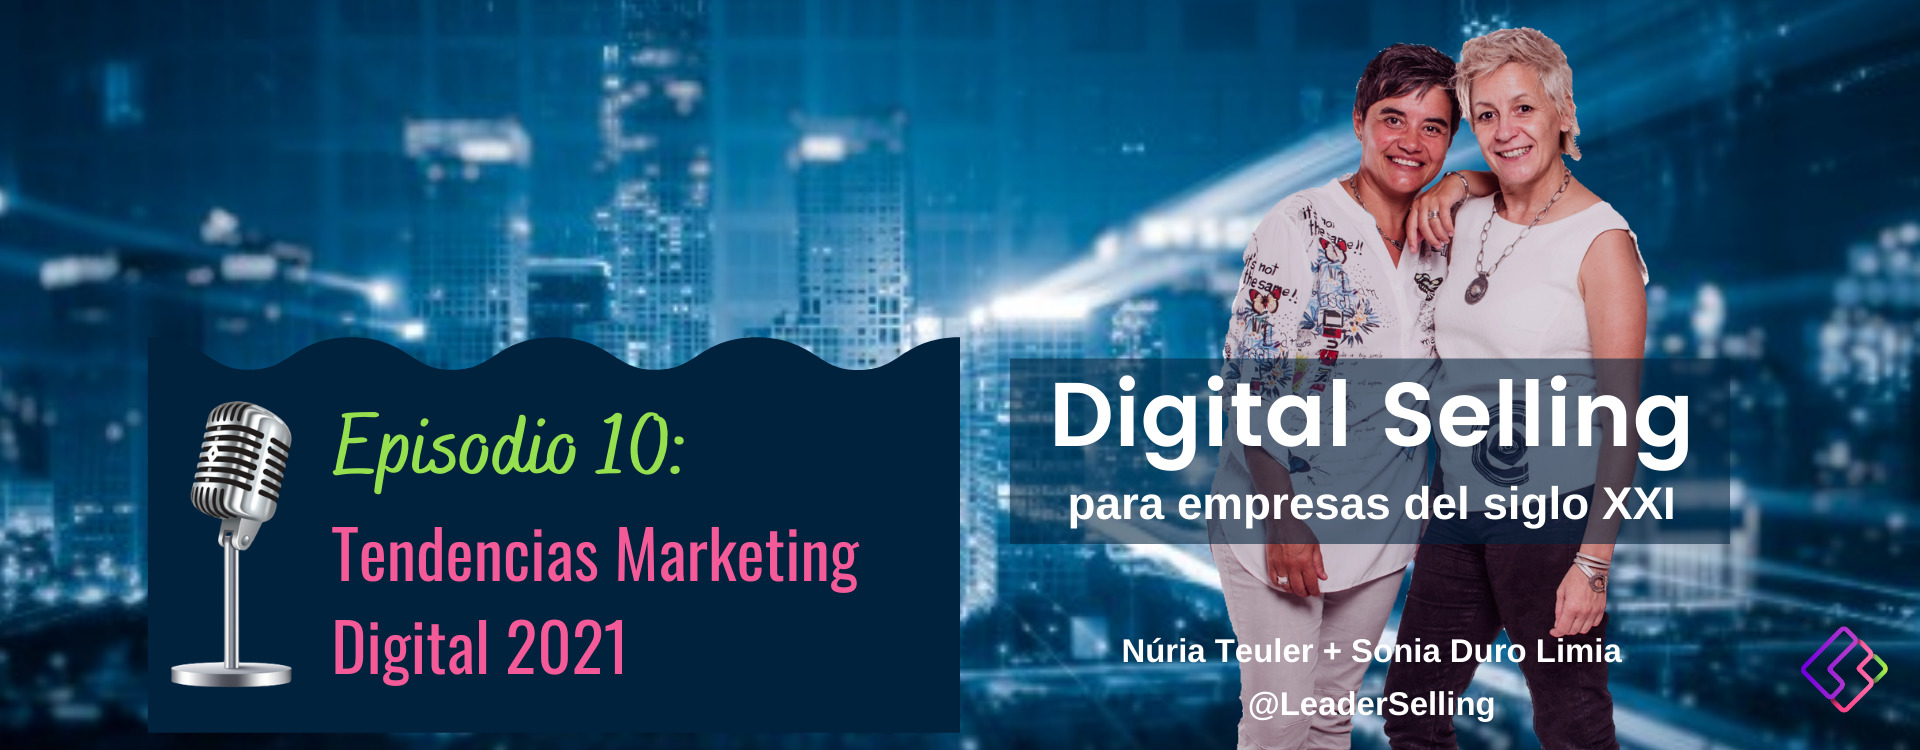 Episodio 10. Tendencias de marketing digital para 2021